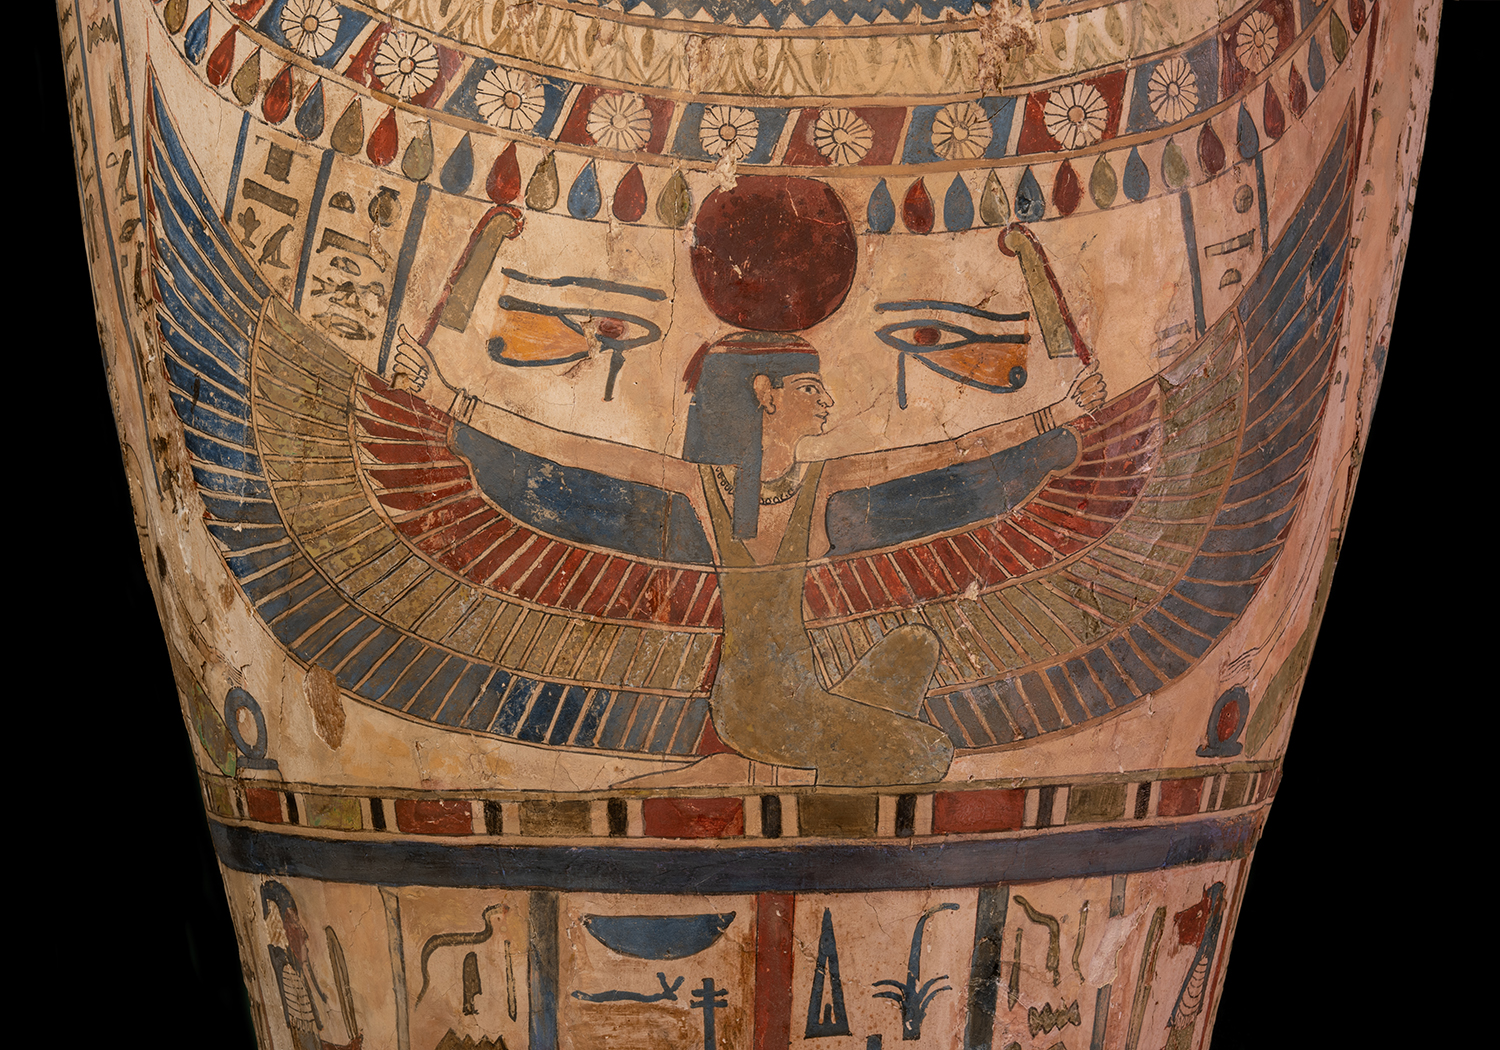 Figure 12: Images of goddesses with outstretched wings frequently decorate the lids of coffins. These images offered protection to the deceased. The goddess Nut is shown on the coffin of Sema-tawy-iirdis.